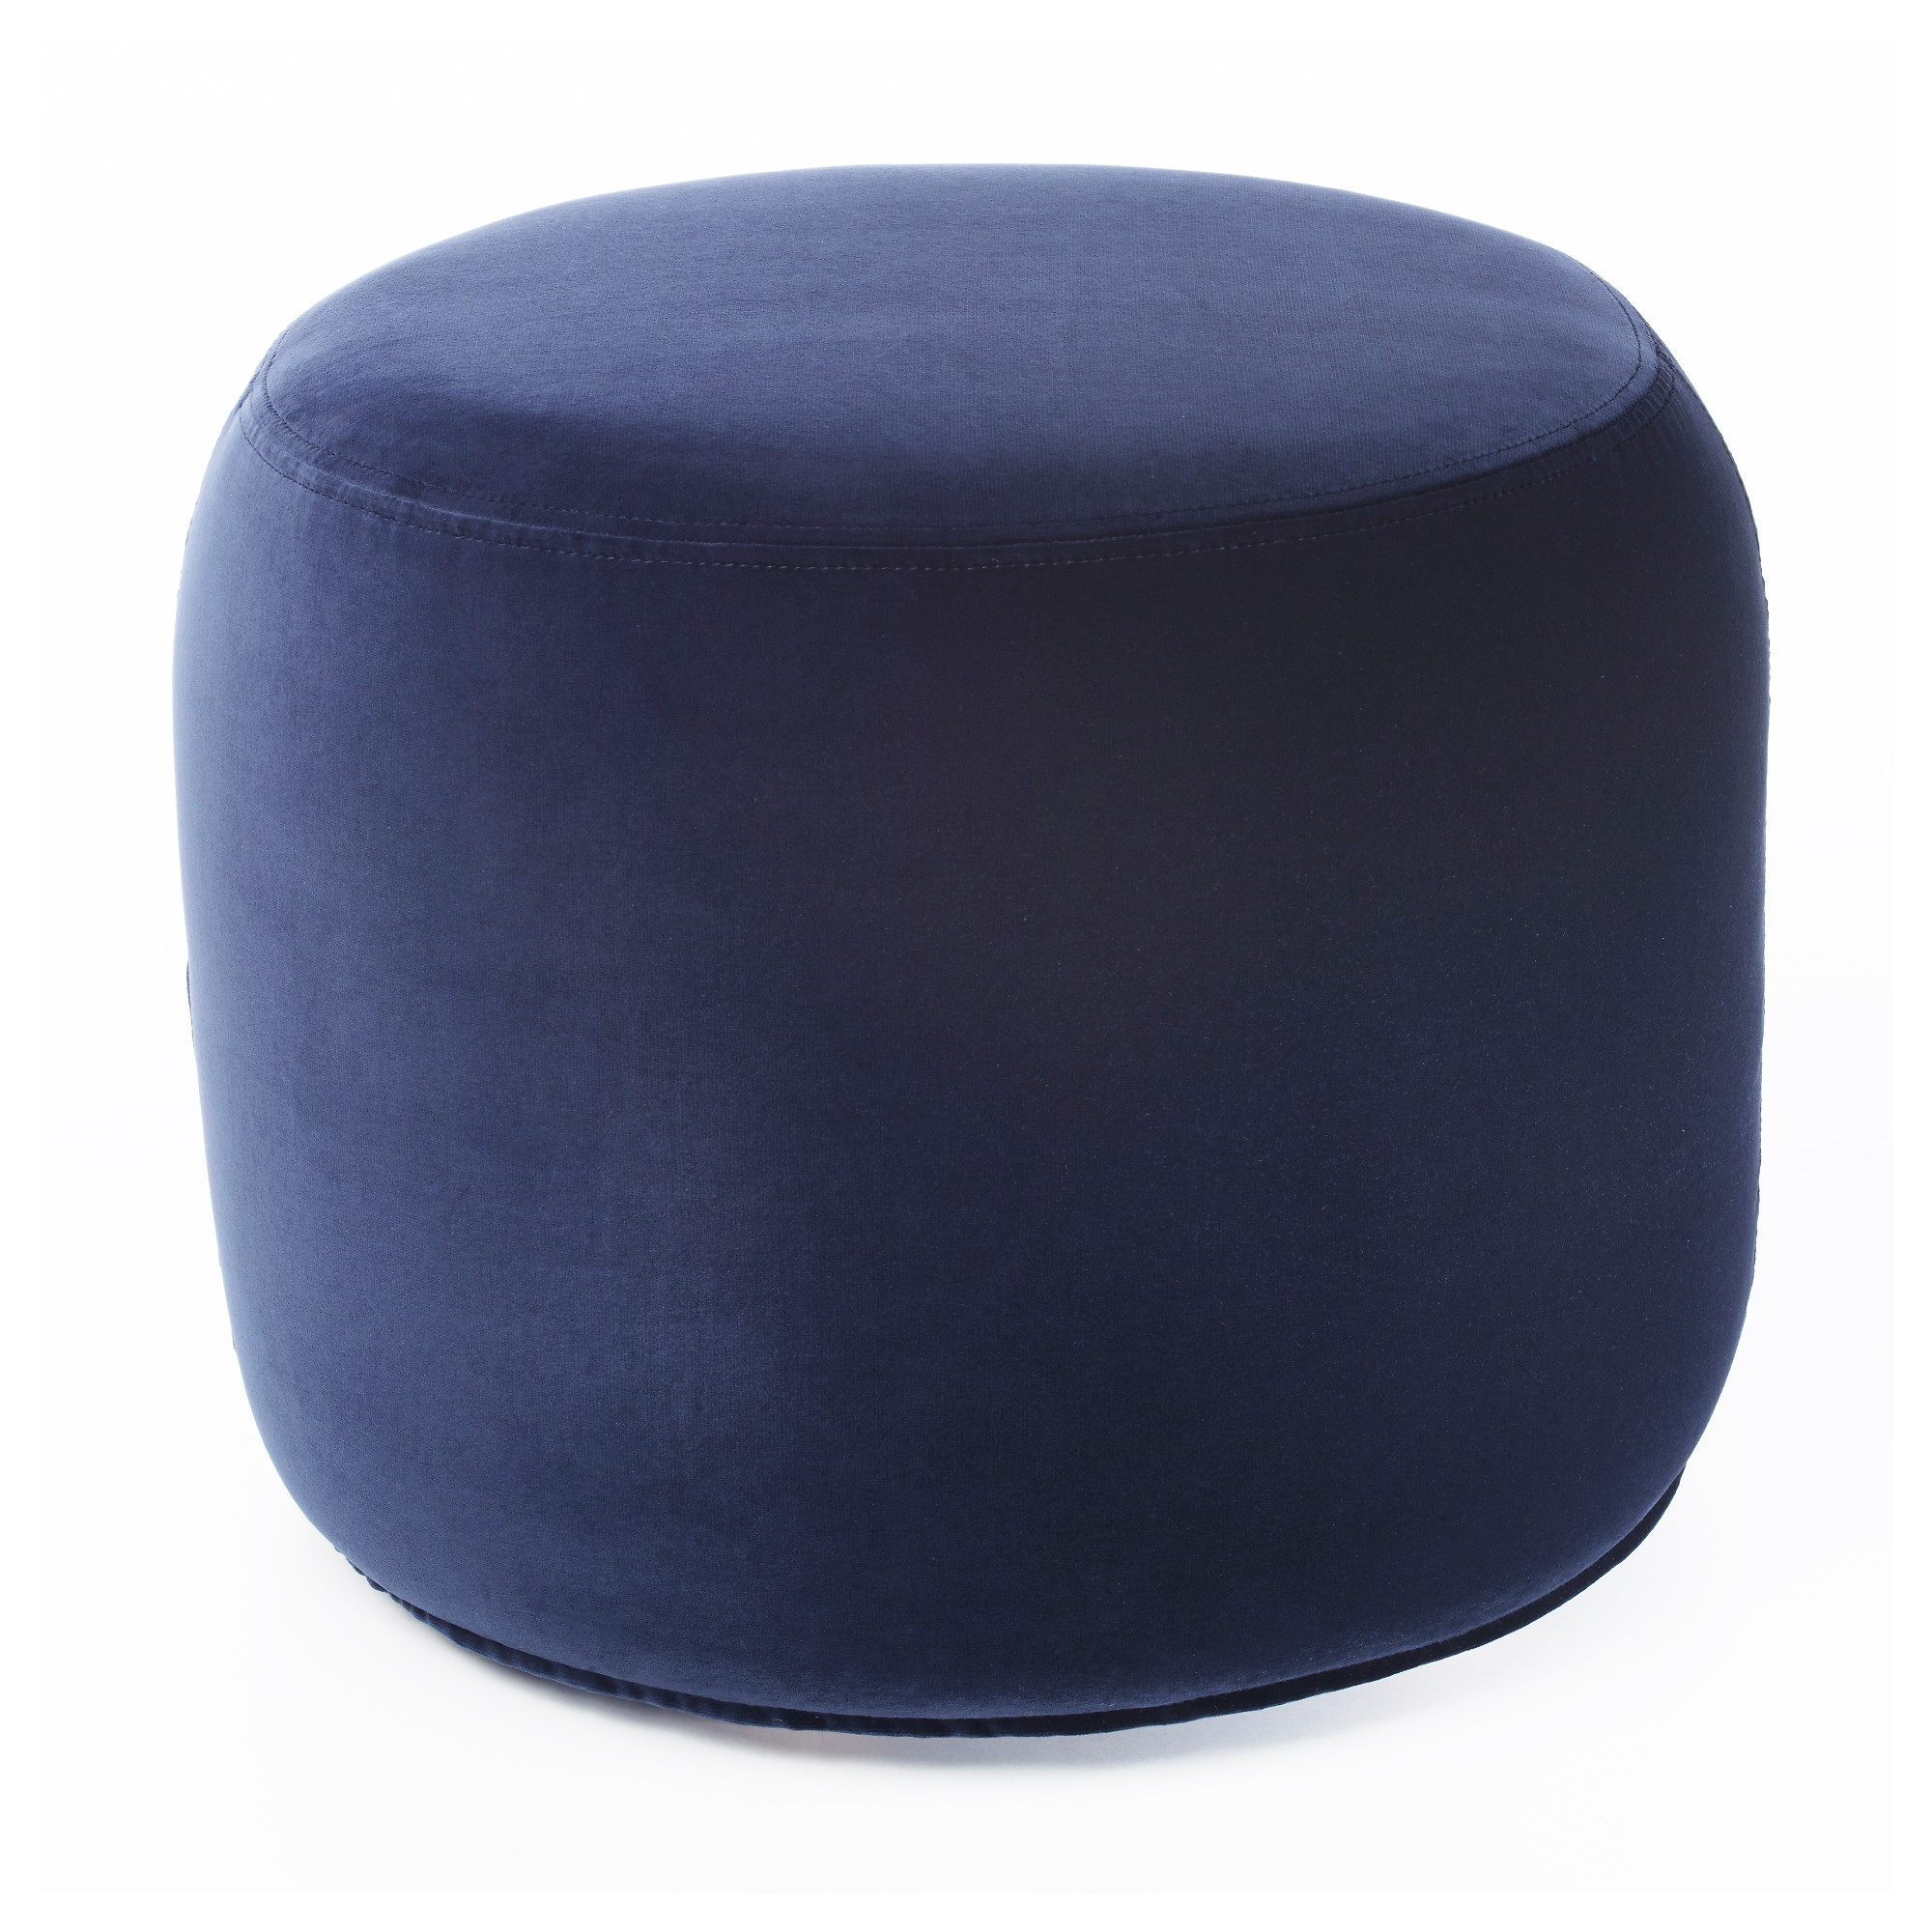 Footstools Ottomans Pouffes Ikea Throughout Tesco Footstools And Pouffes (Photo 1 of 15)